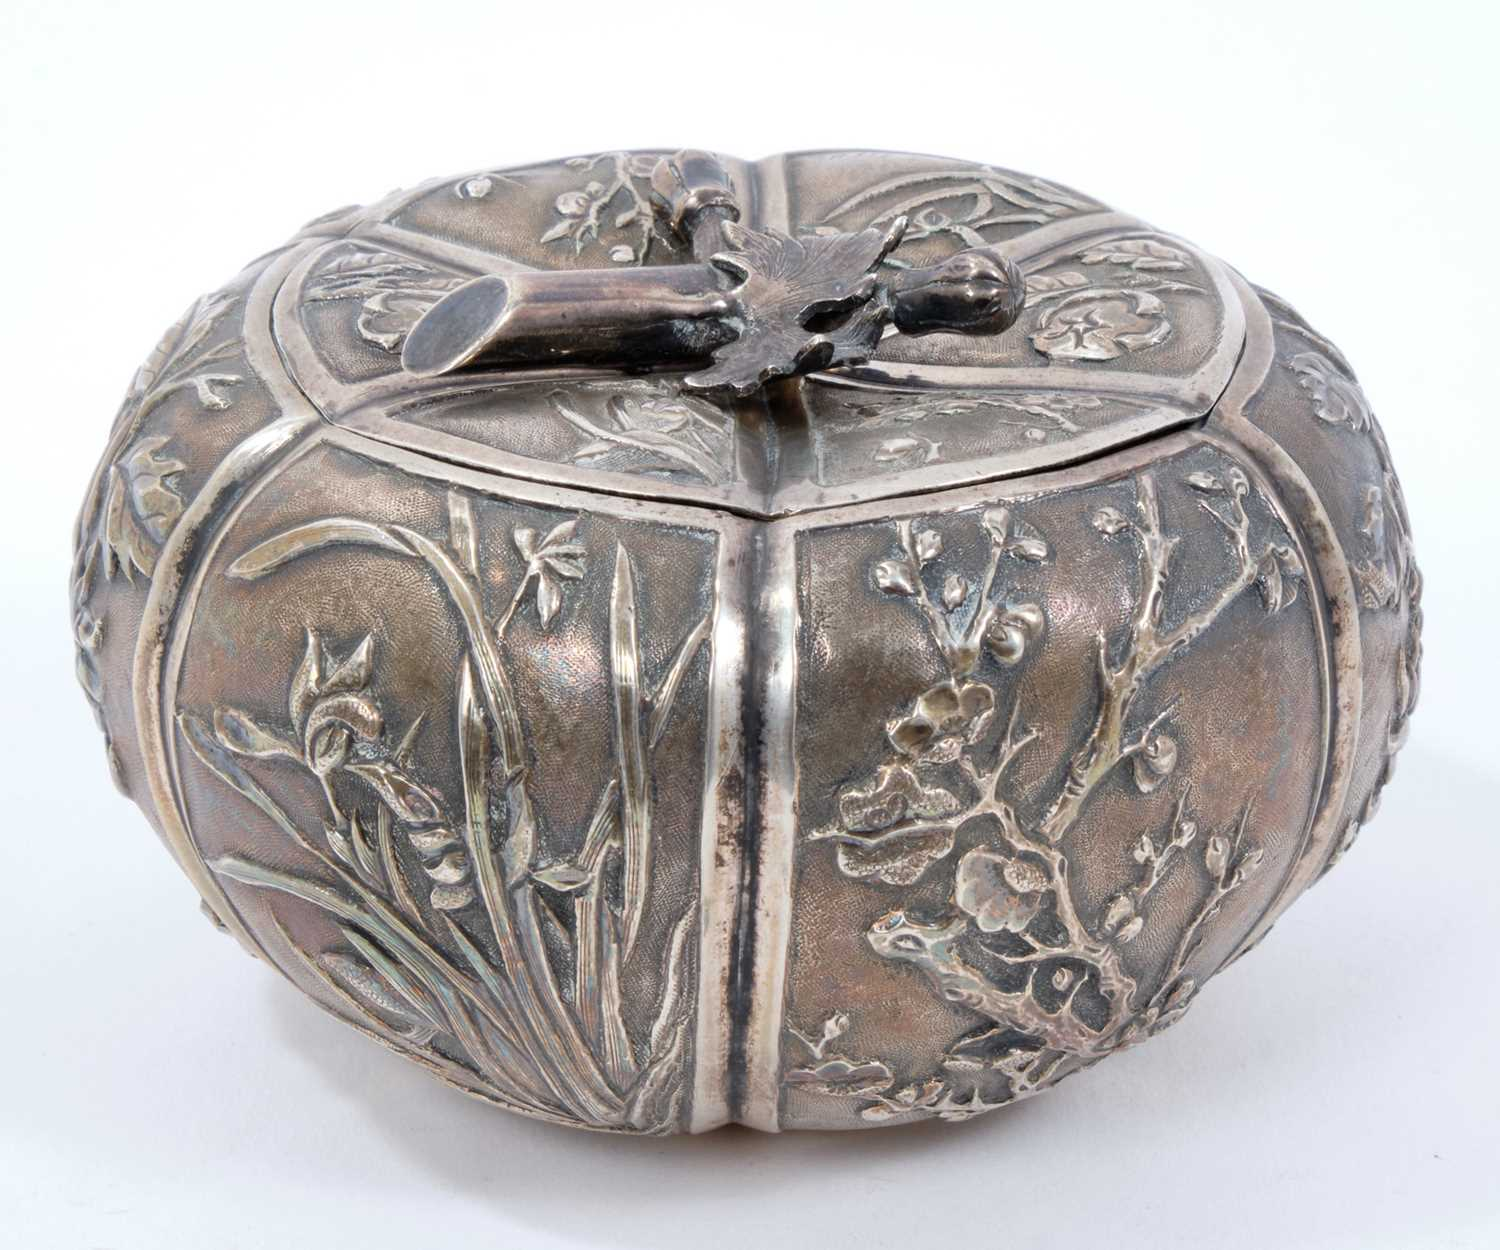 Late 19th/early 20th century Chinese silver lidded pot - Image 3 of 10